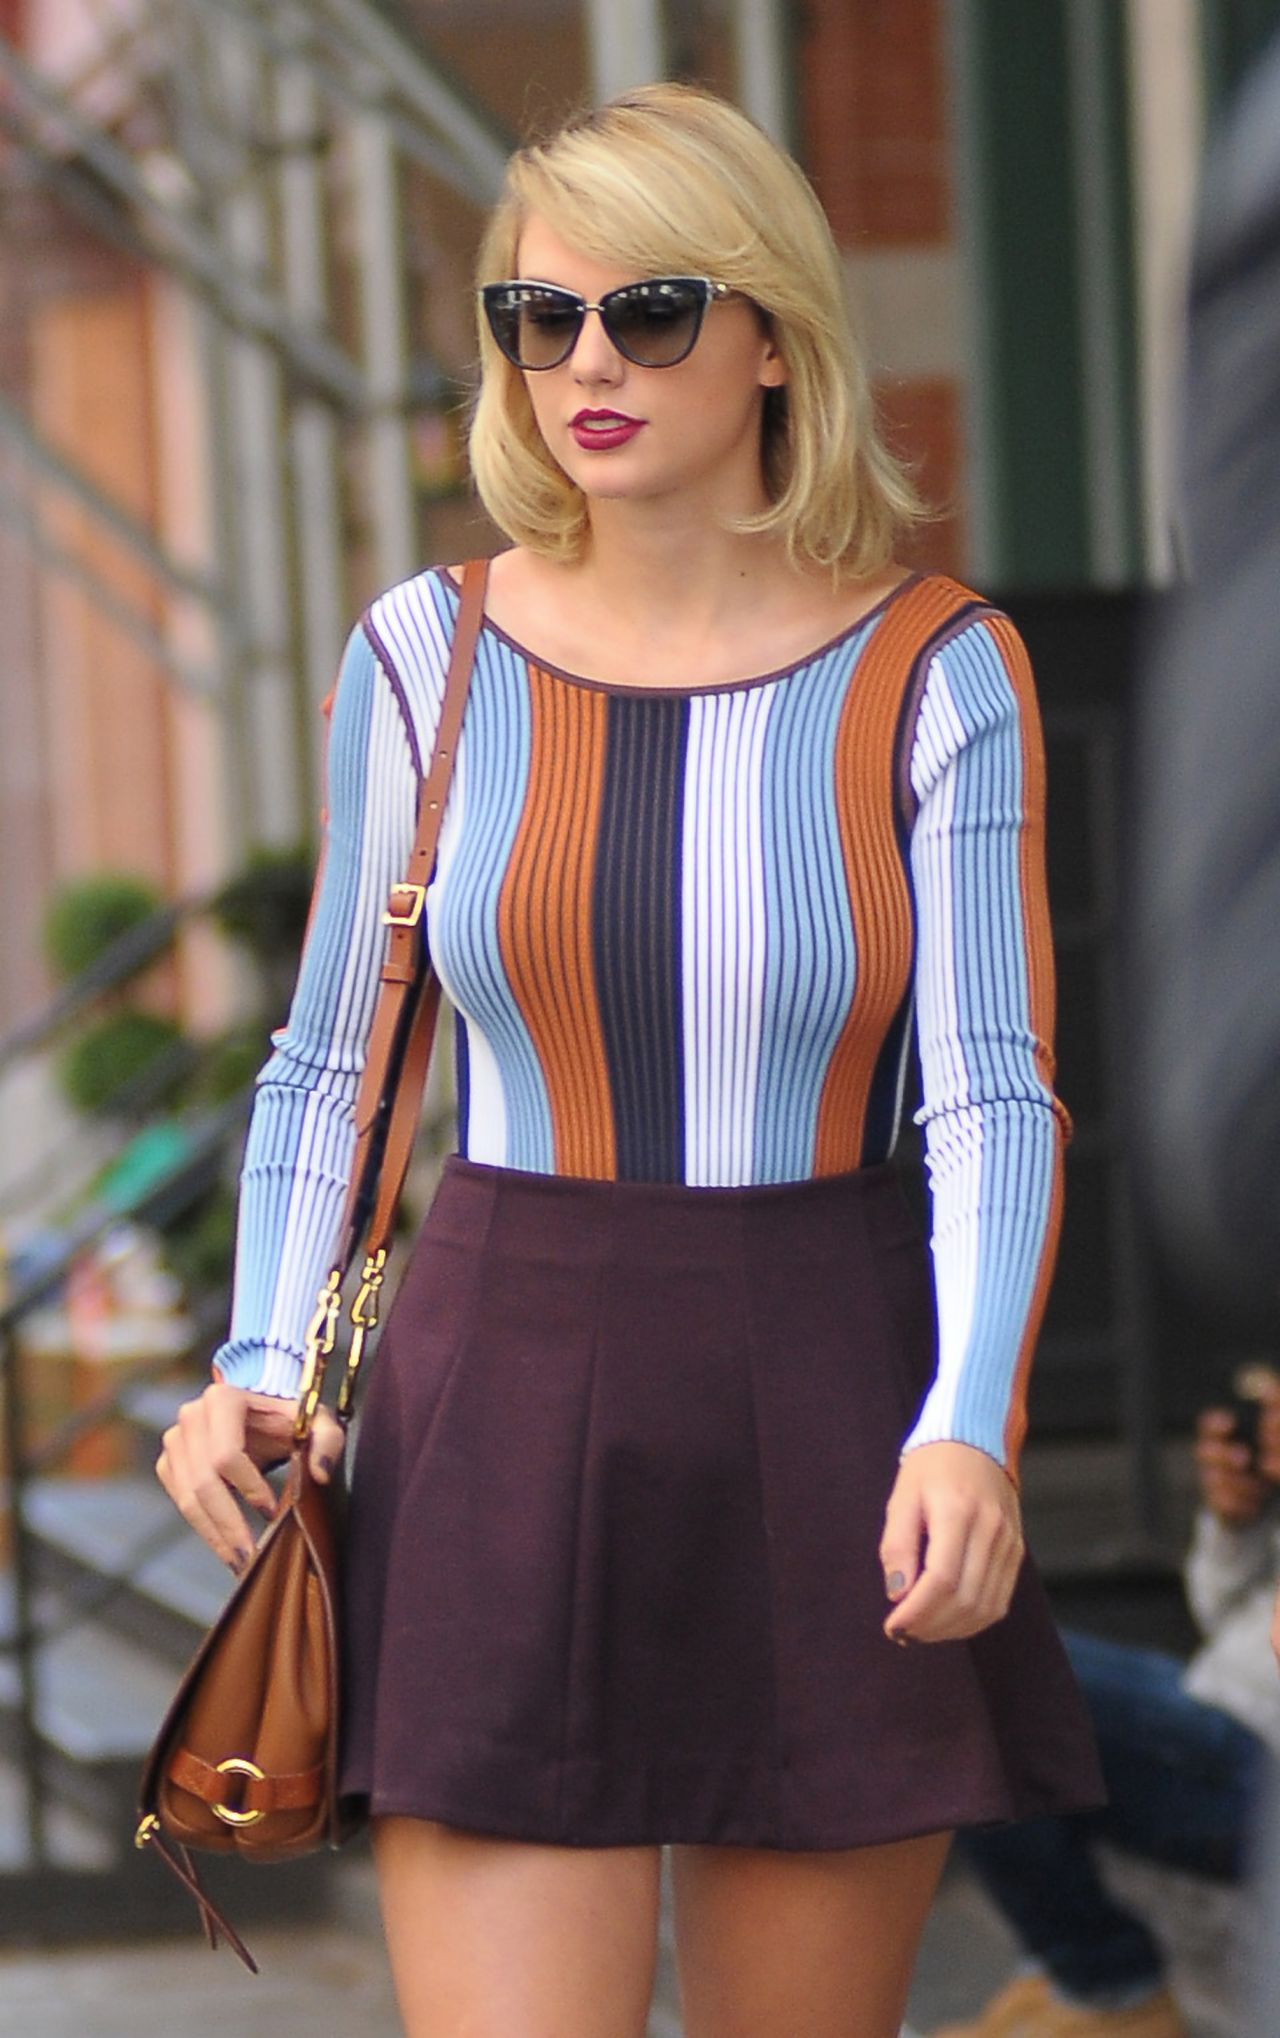 Taylor Swift Inspiring Style - Leaving Her Apartment in ... Taylor Swift